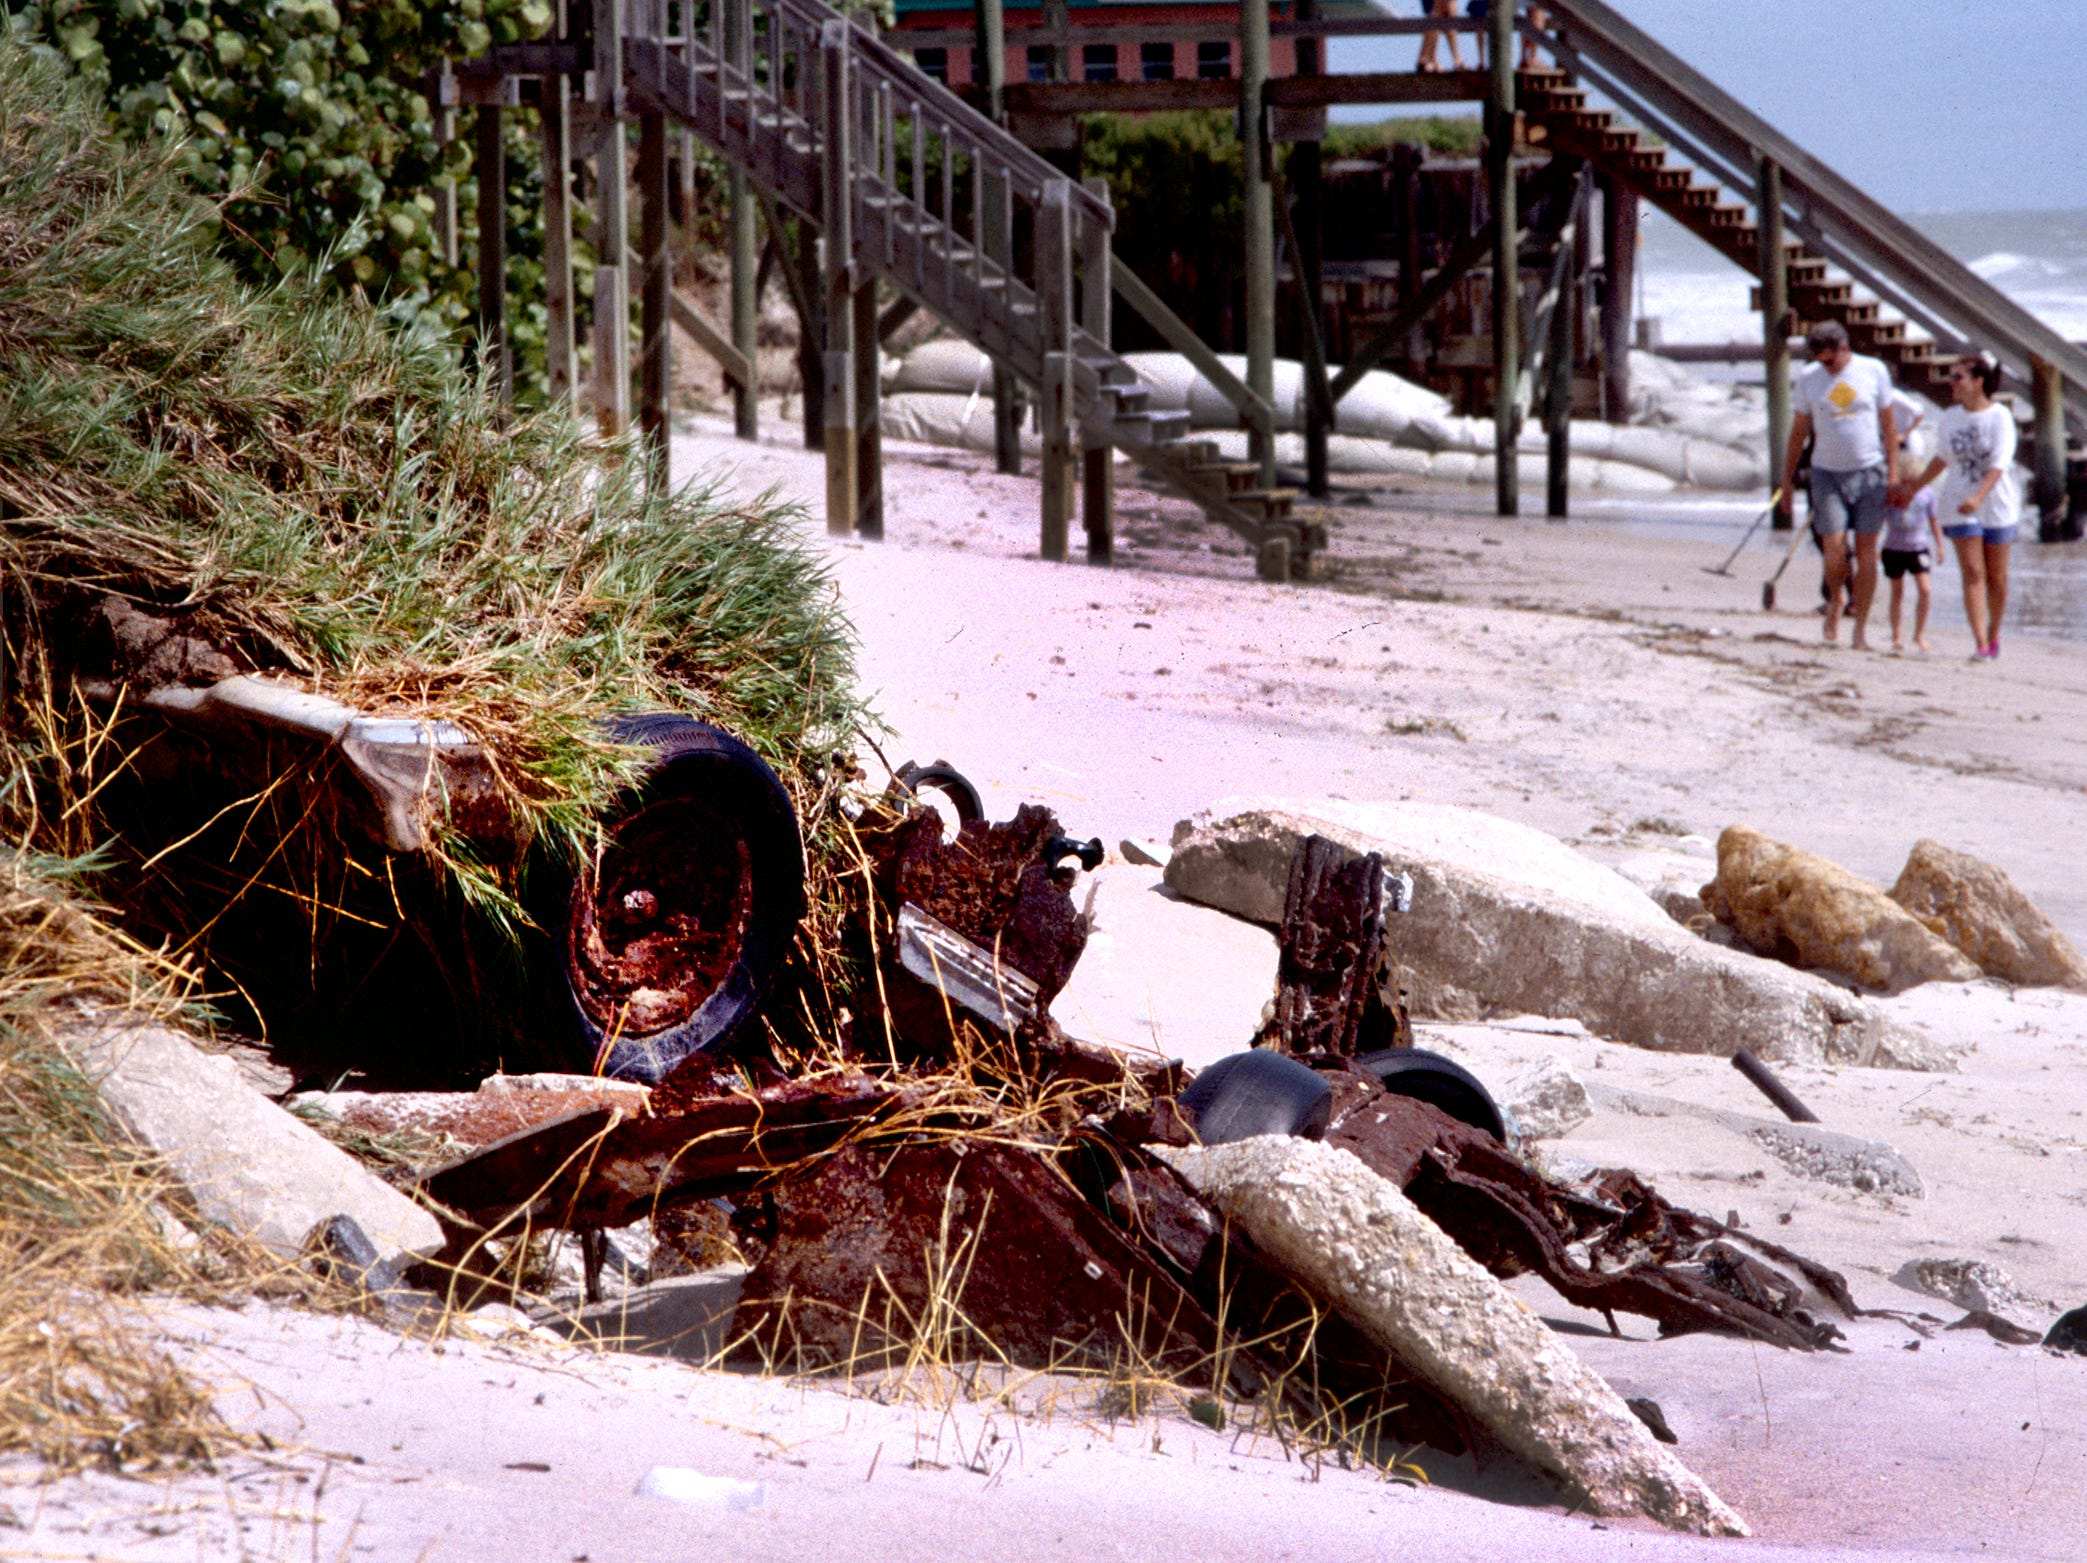 August 2, 1995 - Beaches that took a pounding during Hurricane Erin the night she came ashore, including the area near the Flamevine Lane access. Cars that were buried in the dune line before Hurricane David in 1979 to preserve the dune line were uncovered again.